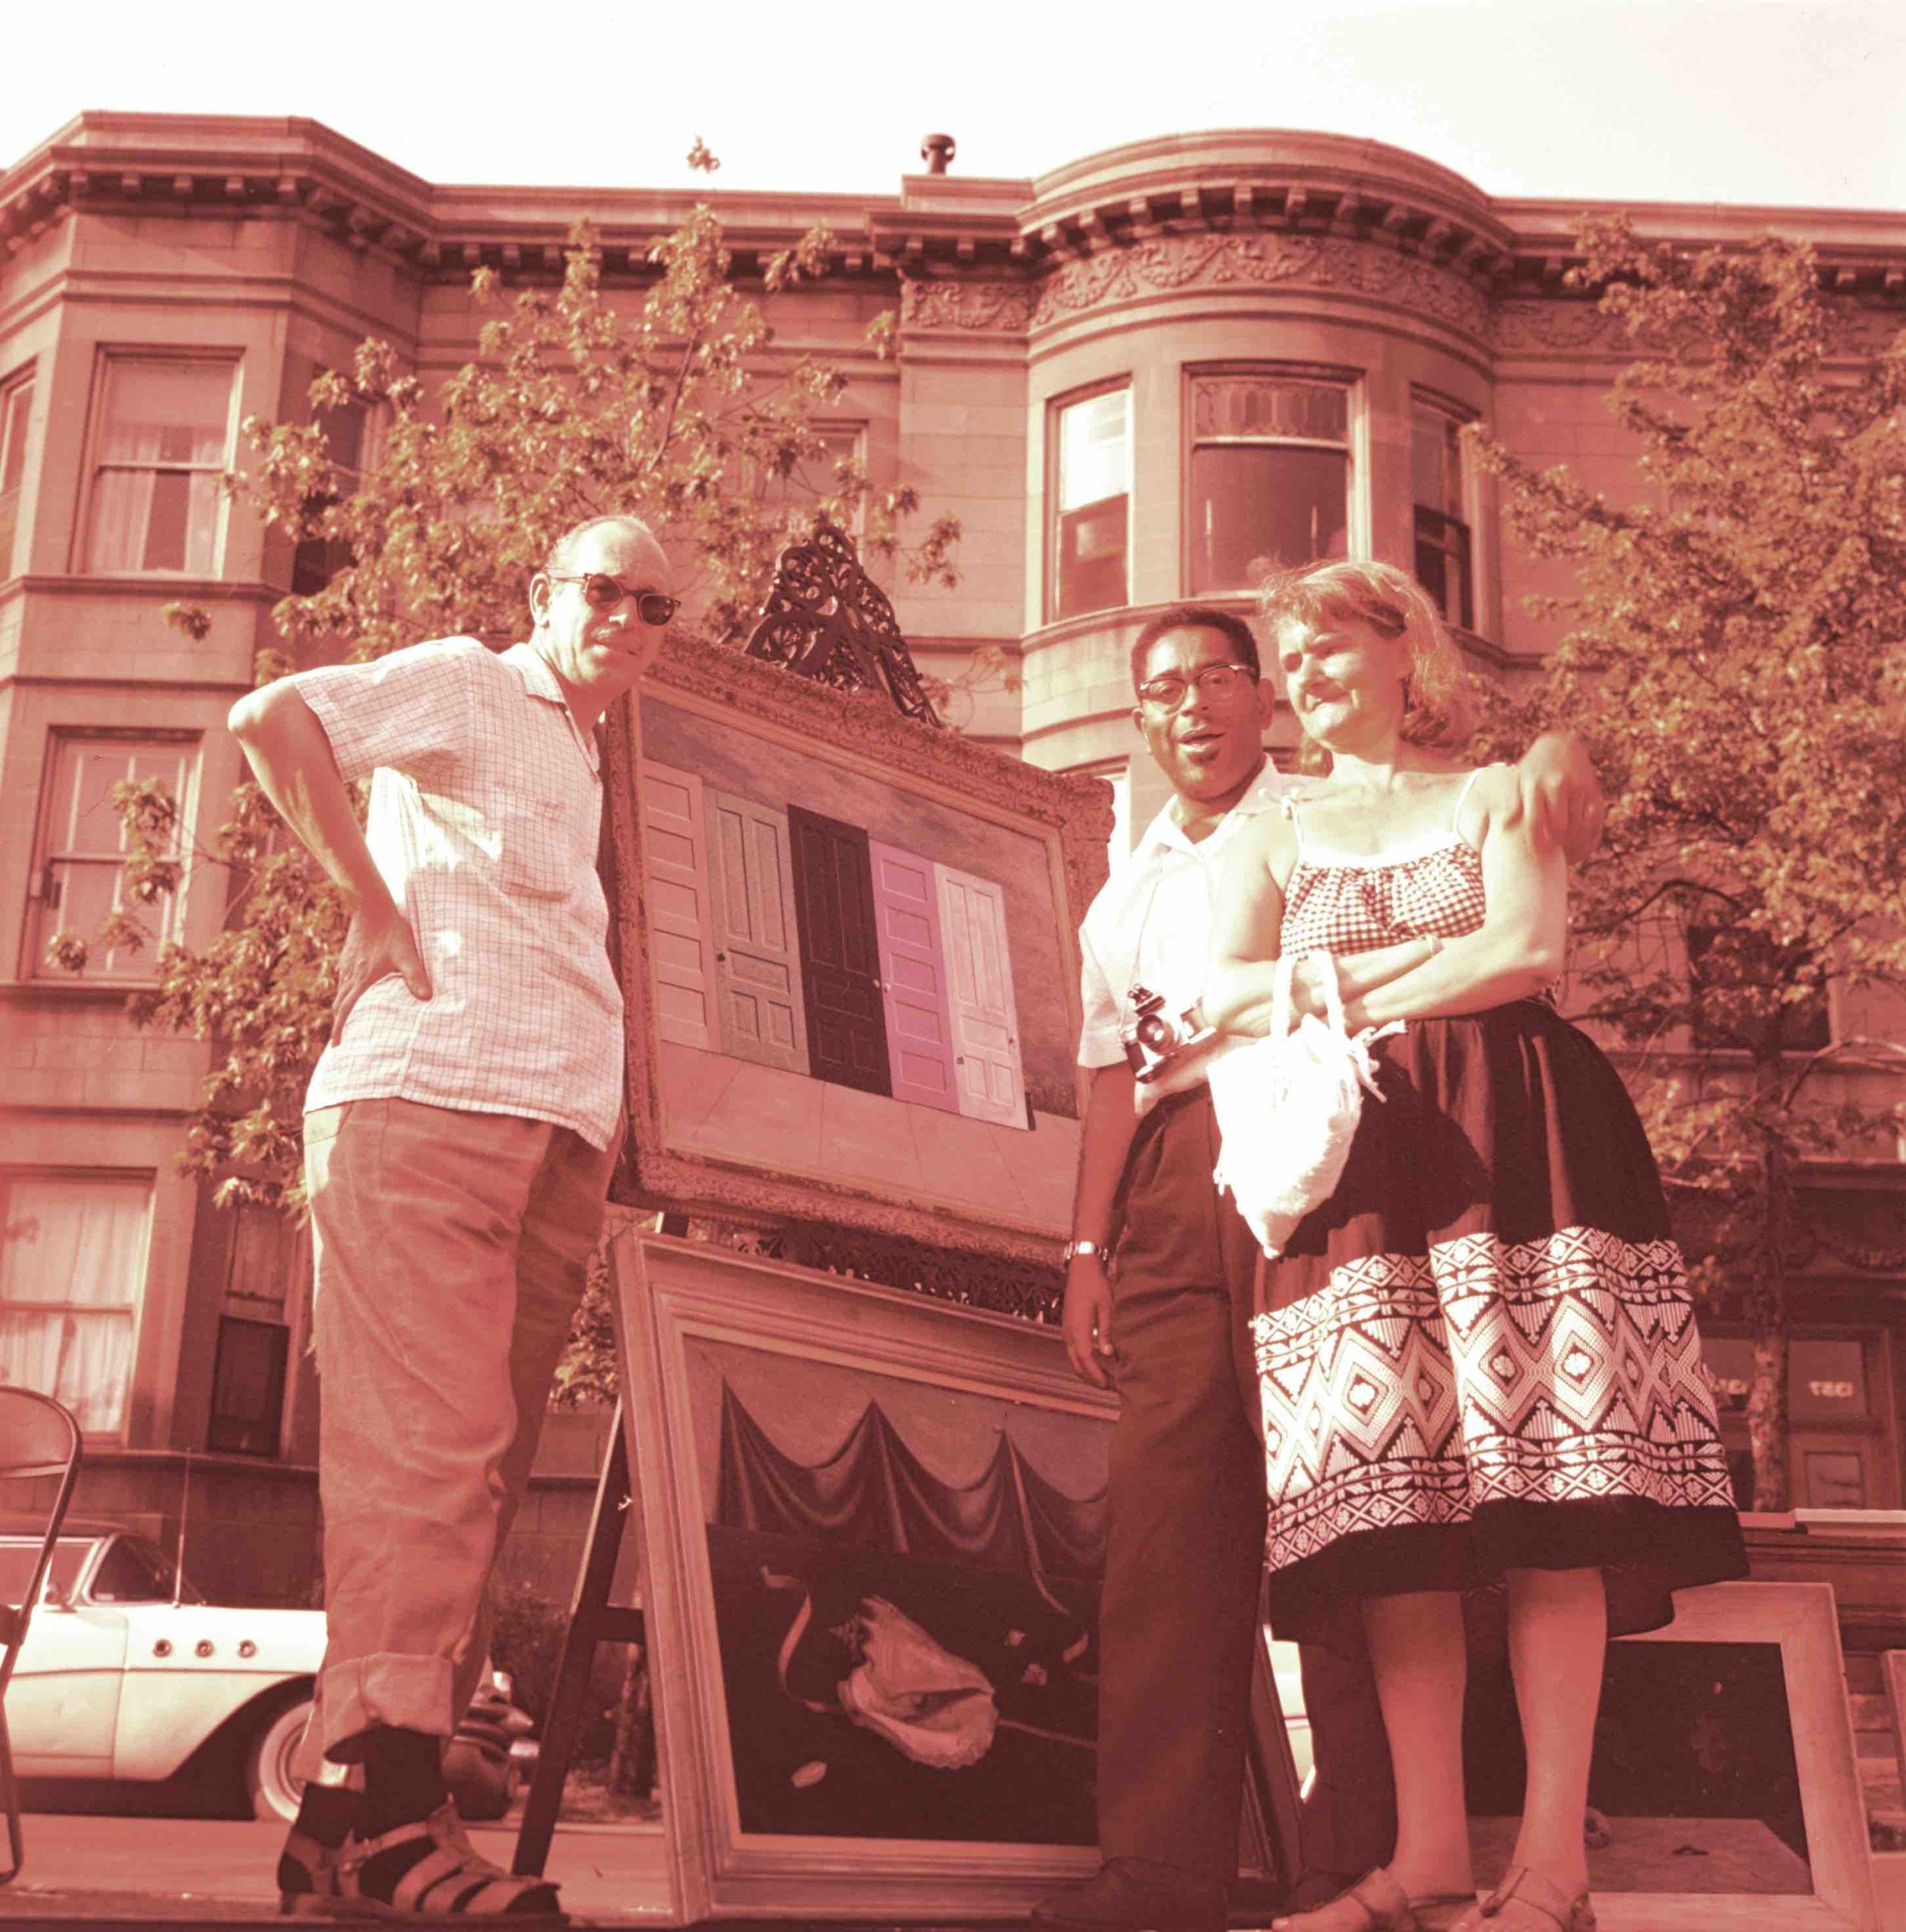 Gertrude Abercrombie, Dizzy Gillespie and Frank Sandiford at an outdoor art exhibition, 1956 Aug. / unidentified photographer. Gertrude Abercrombie papers, 1880-1986, bulk, 1935-1977. Archives of American Art, Smithsonian Institution